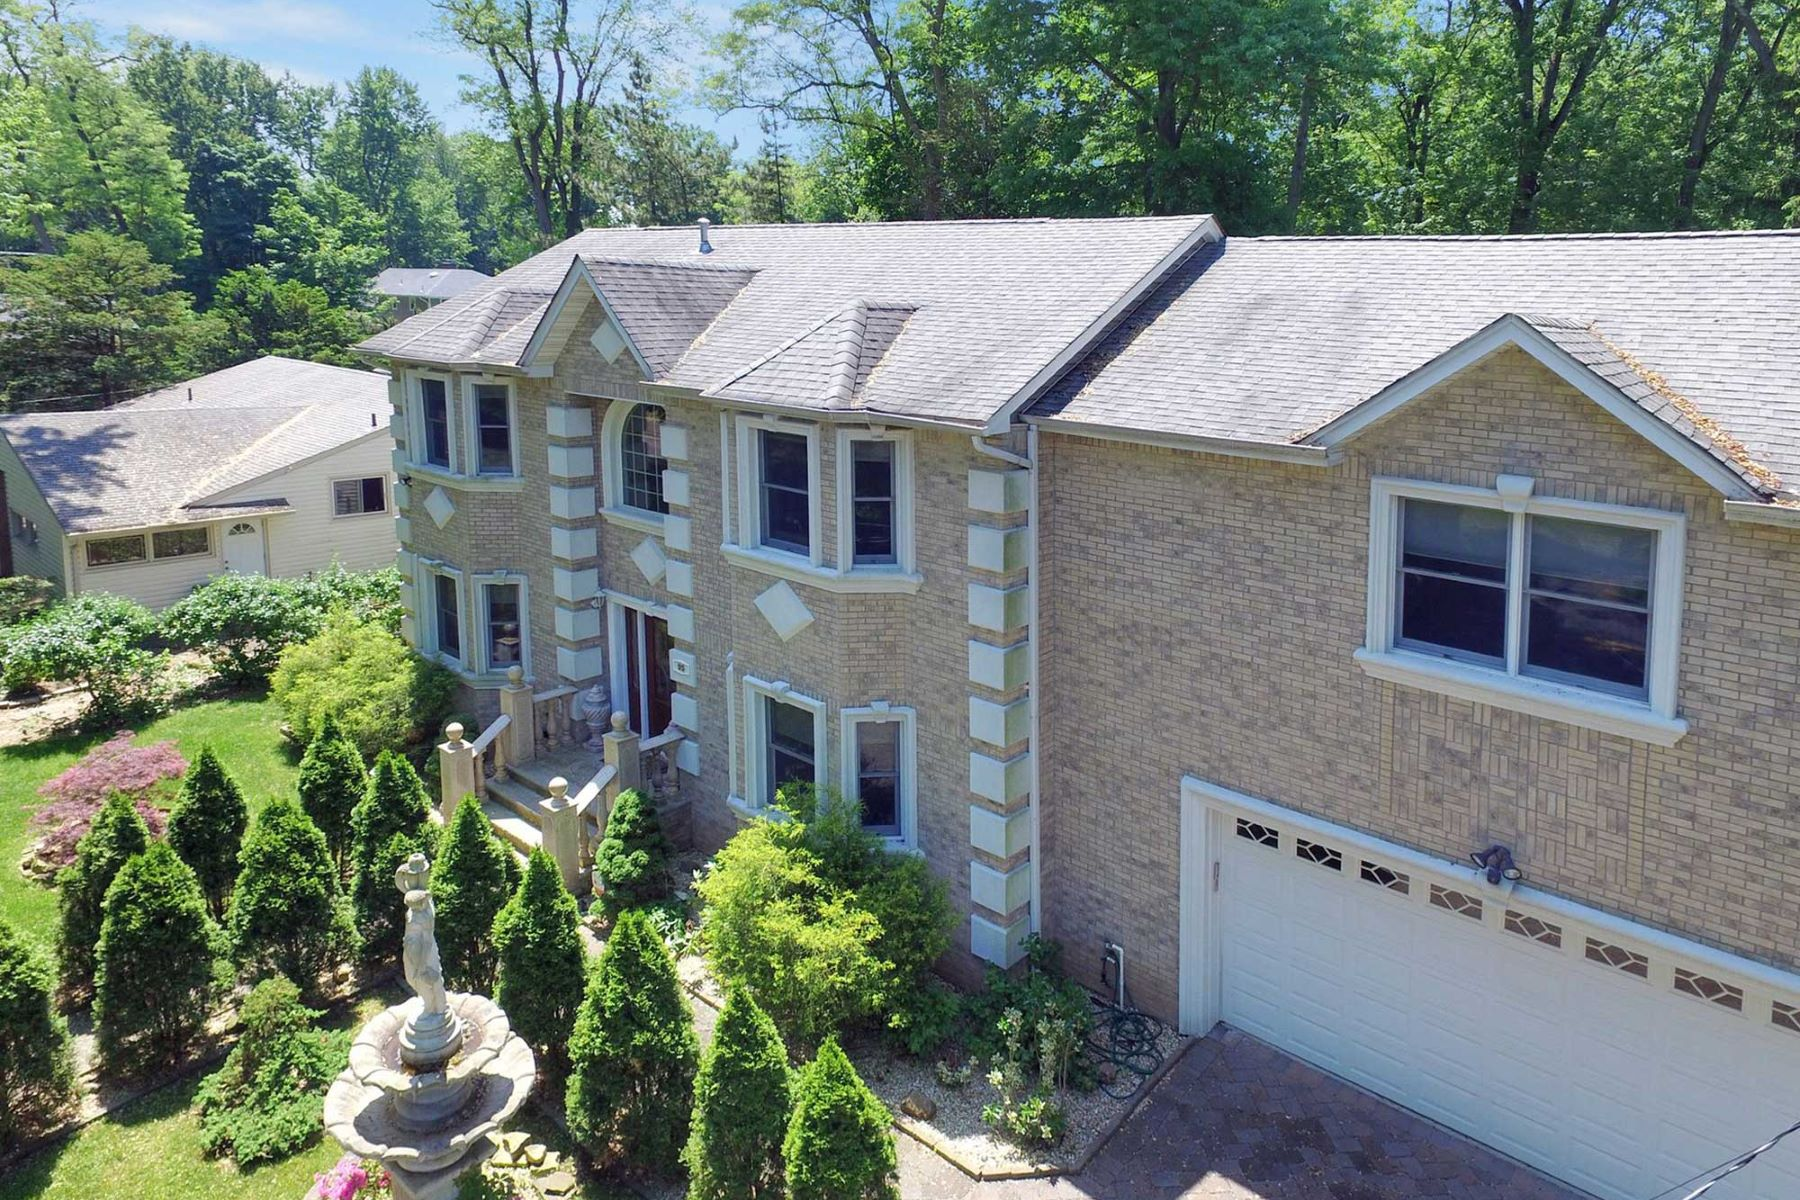 Single Family Homes for Active at Custom Built 95 Knickerbocker Road Demarest, New Jersey 07627 United States